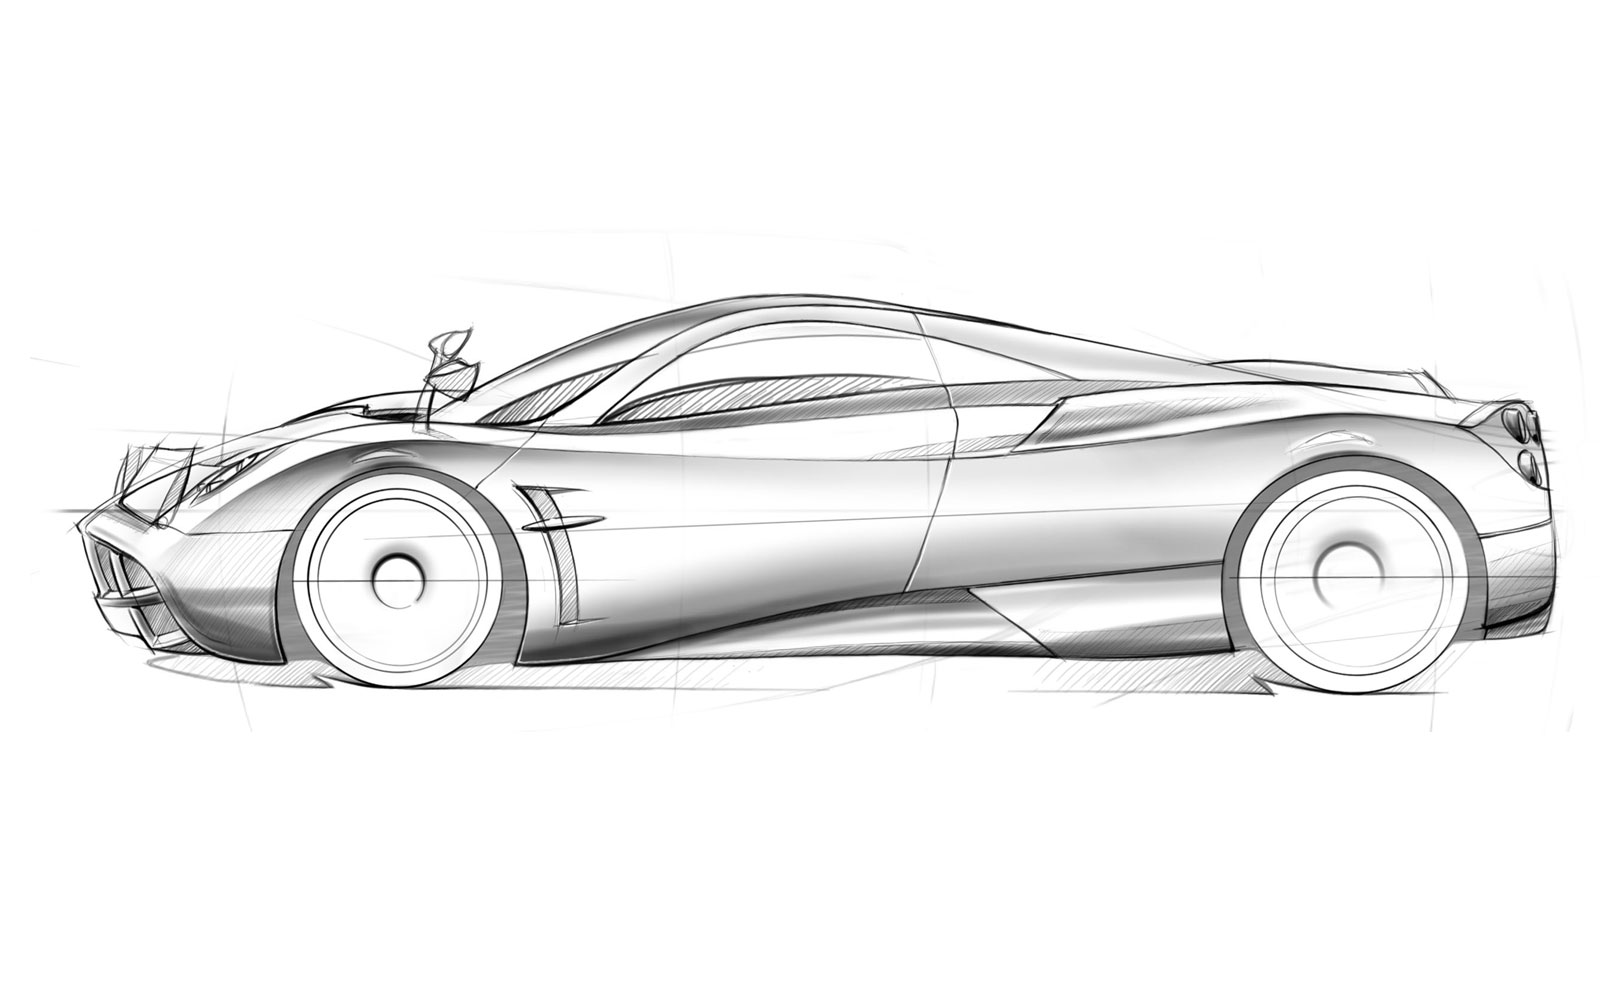 Pagani Huayra Design Sketch